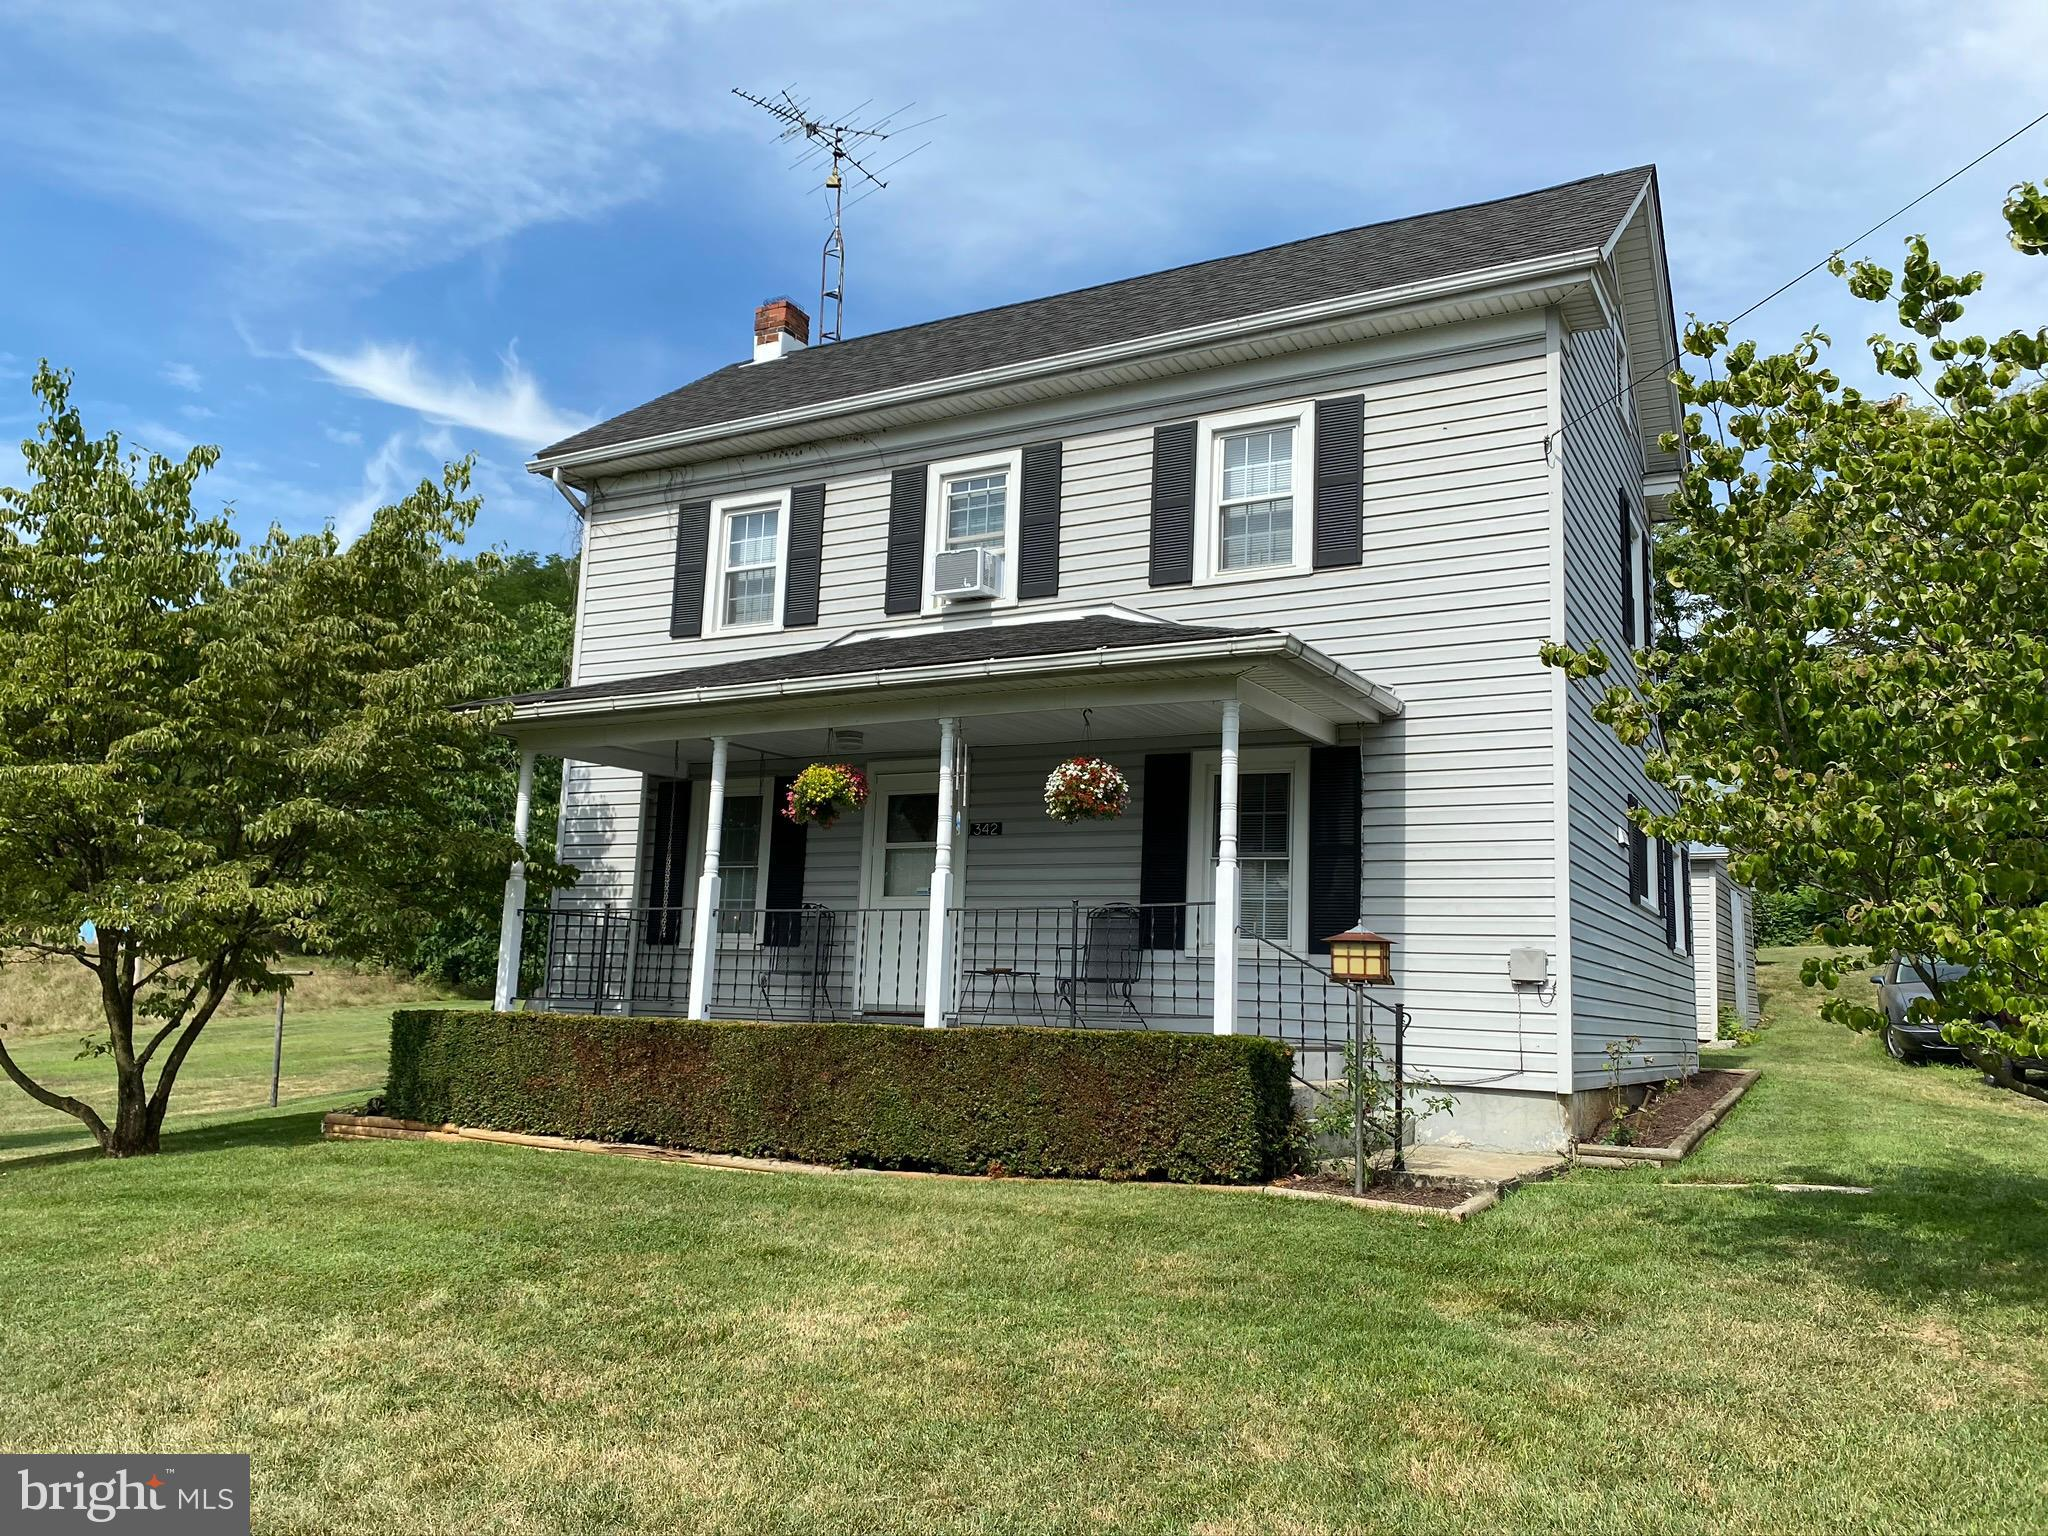 Well cared for home on .38 acres in Inwood, WV. Beautiful lot that backs to woods on dead-end street